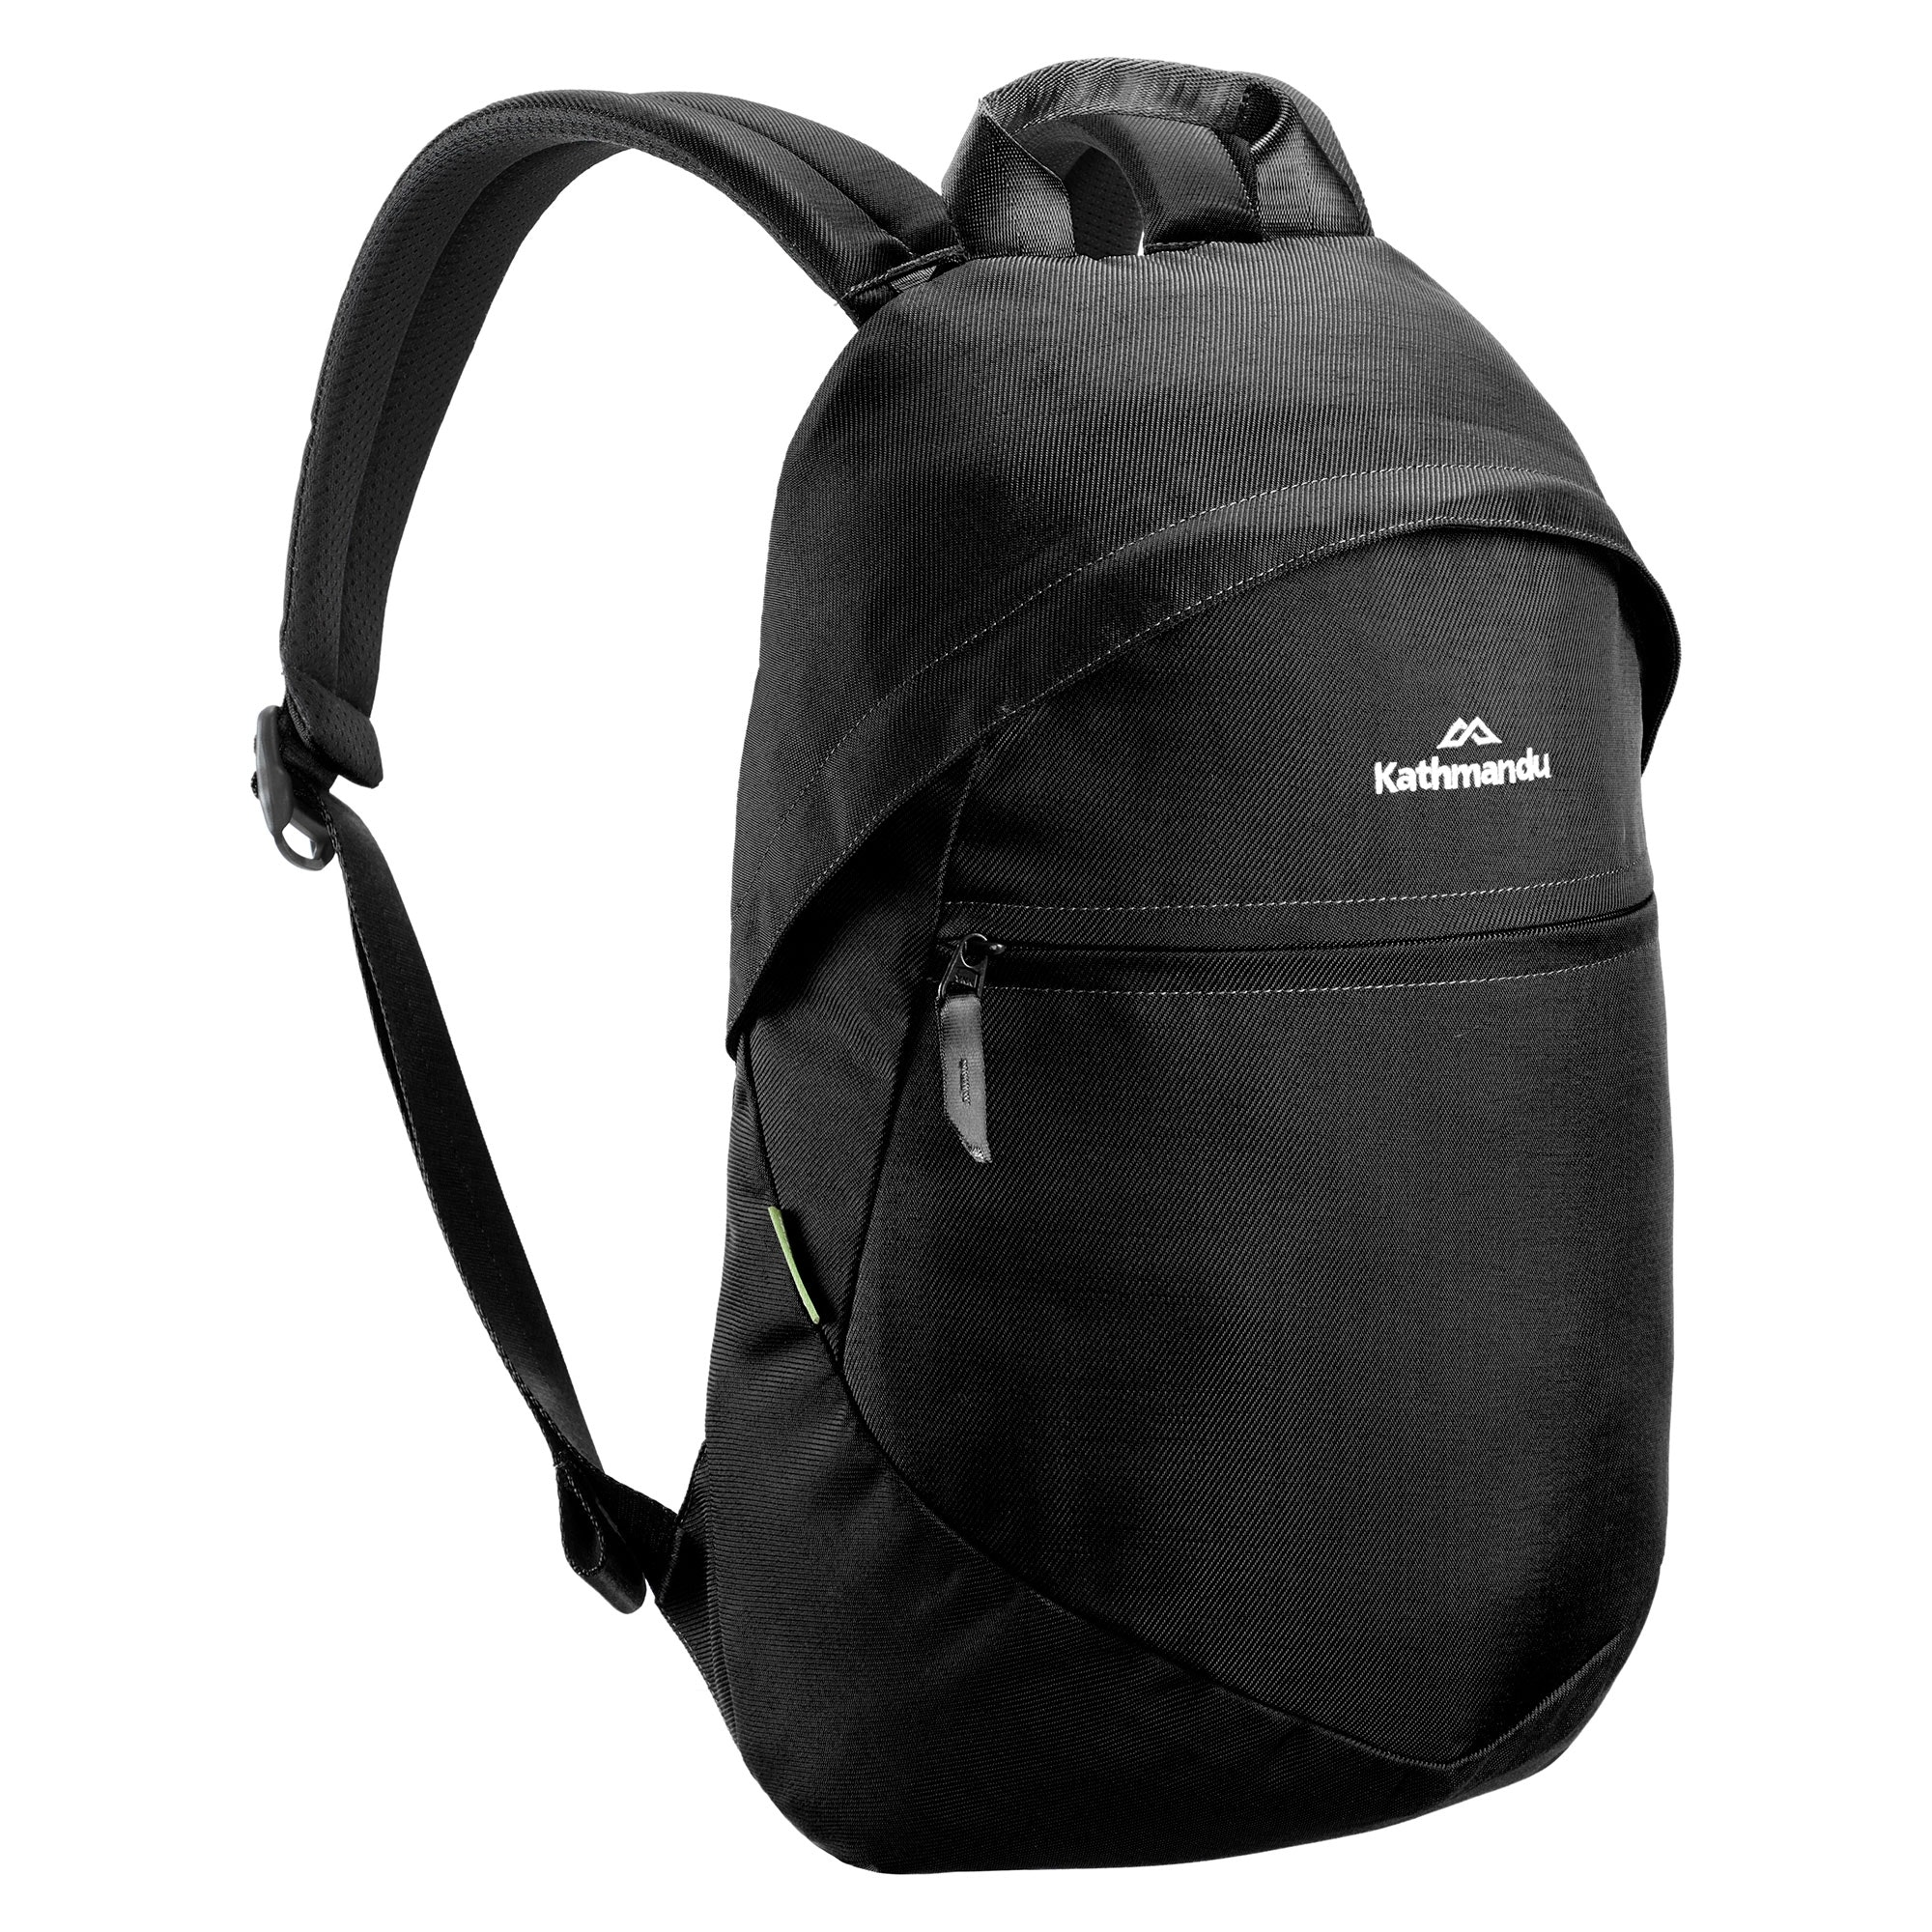 NEW-Kathmandu-Solus-Durable-Recycled-Polyester-Work-Travely-Study-Outdoor-Pack